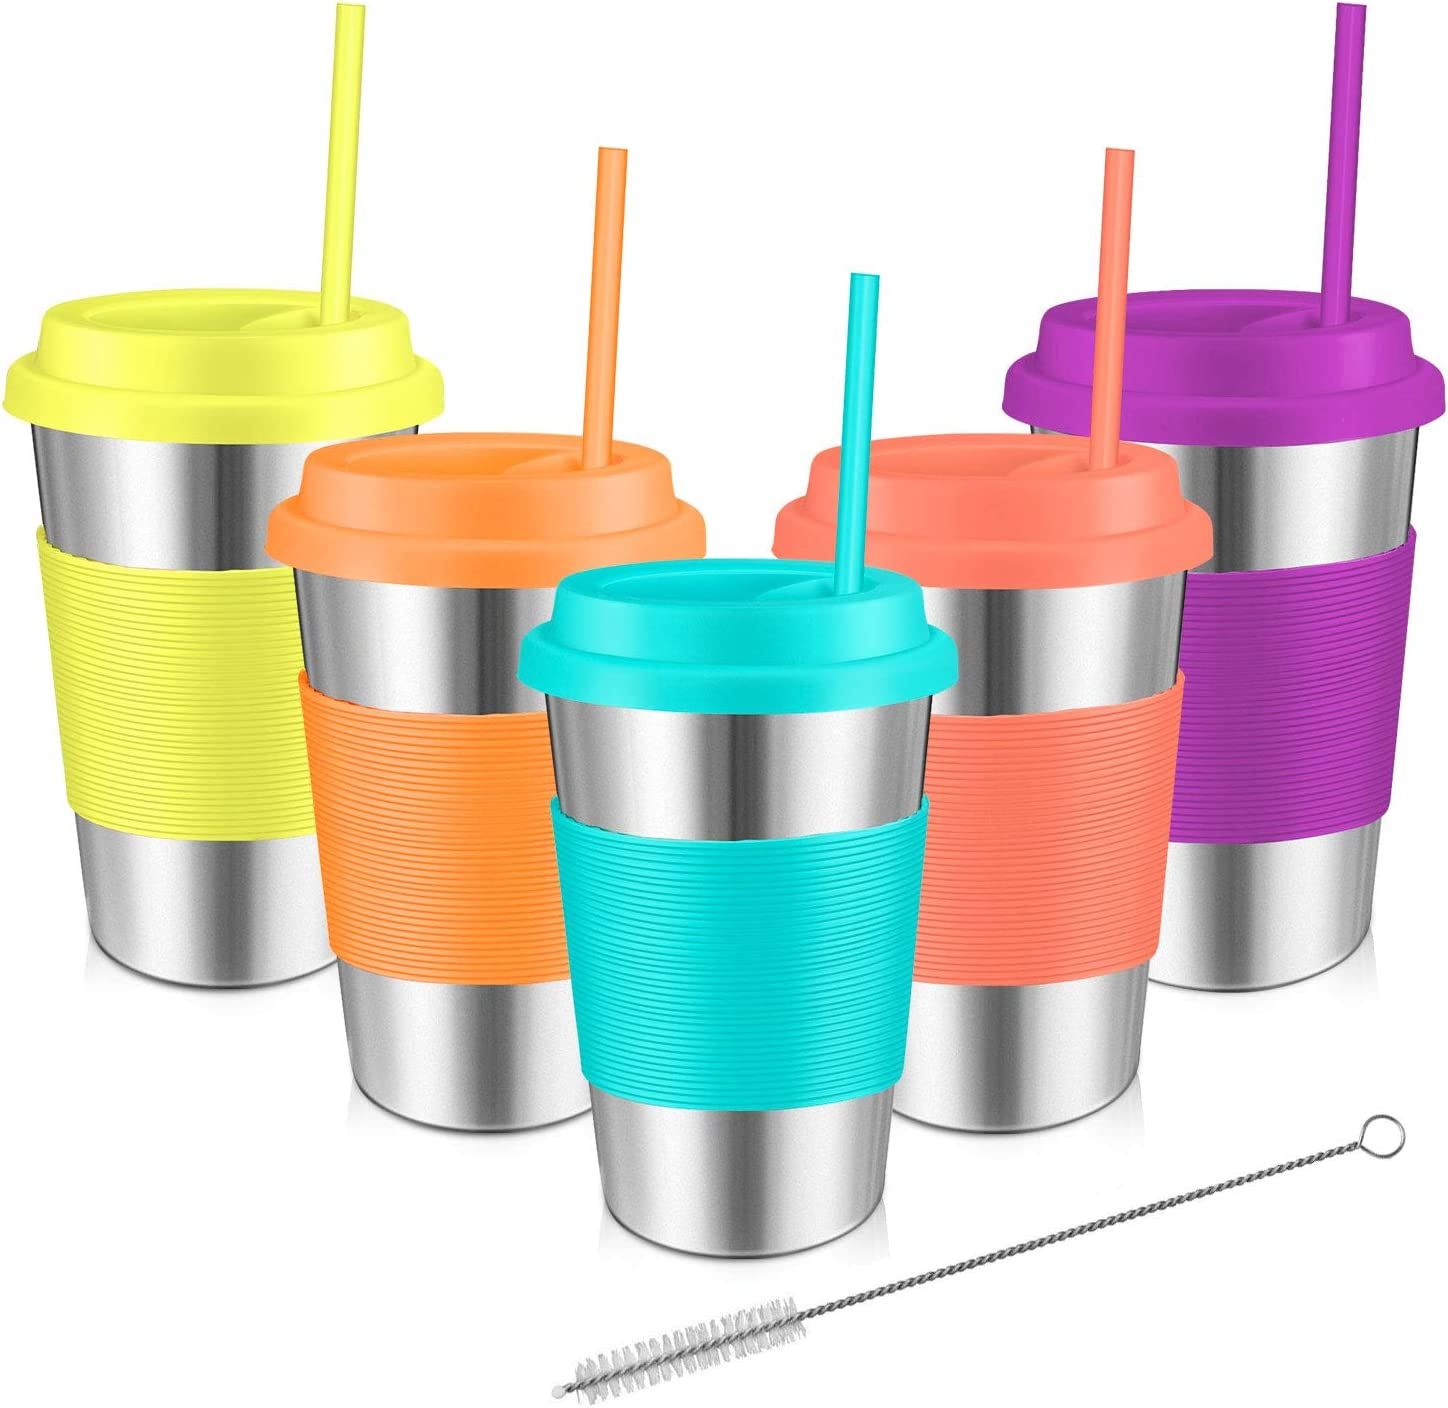 Stainless Steel Cups, Kereda Sippy Cup For Kids/Adults 16oz With Silicone Sleeves, Lids And Straws, Bpa Free Premium Metal Drinking Glasses (Pack Of 5)